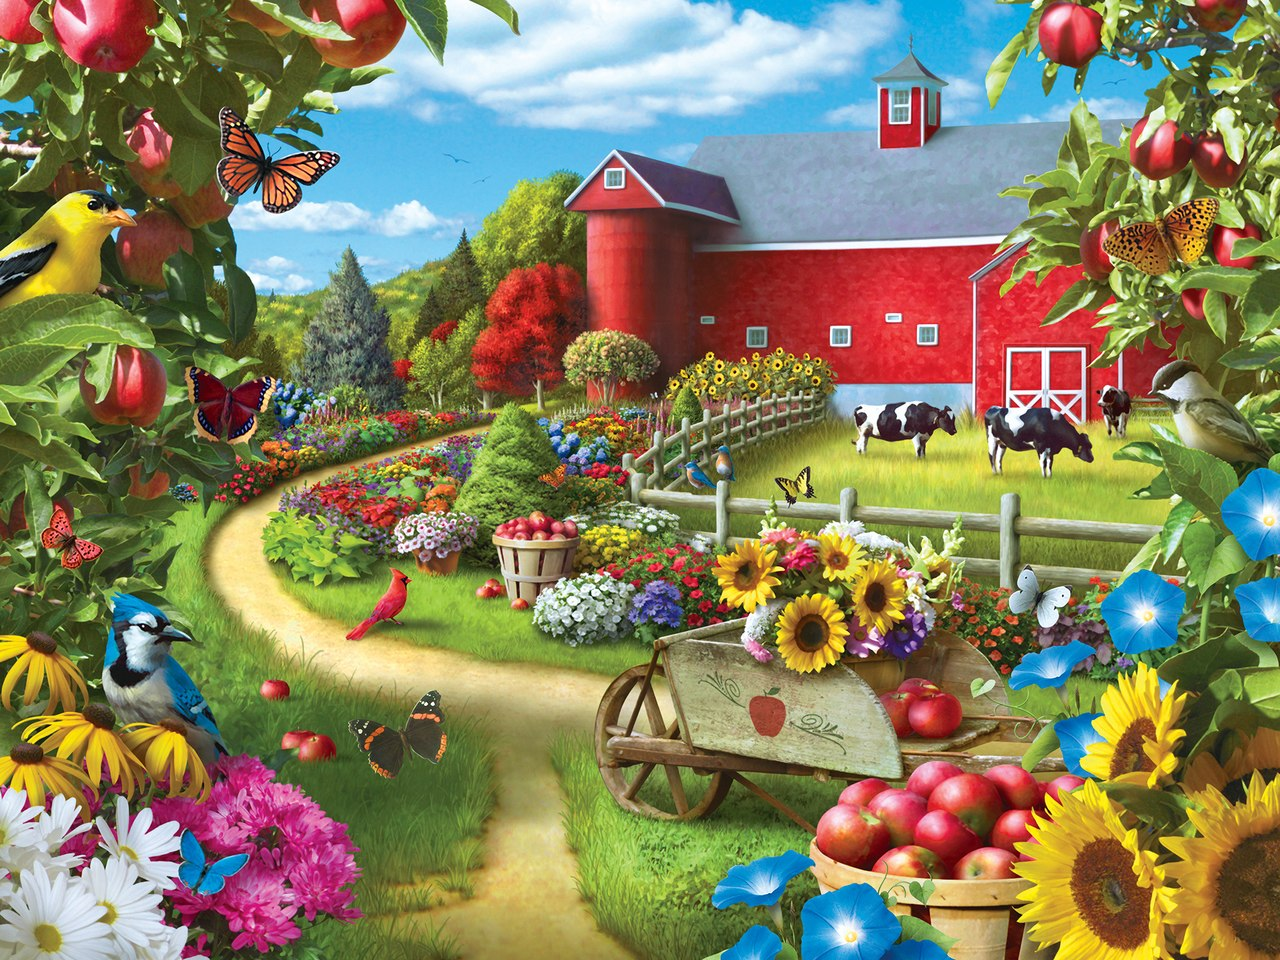 Apple of My Eye - 400pc Jigsaw Puzzle by Masterpieces  			  					NEW